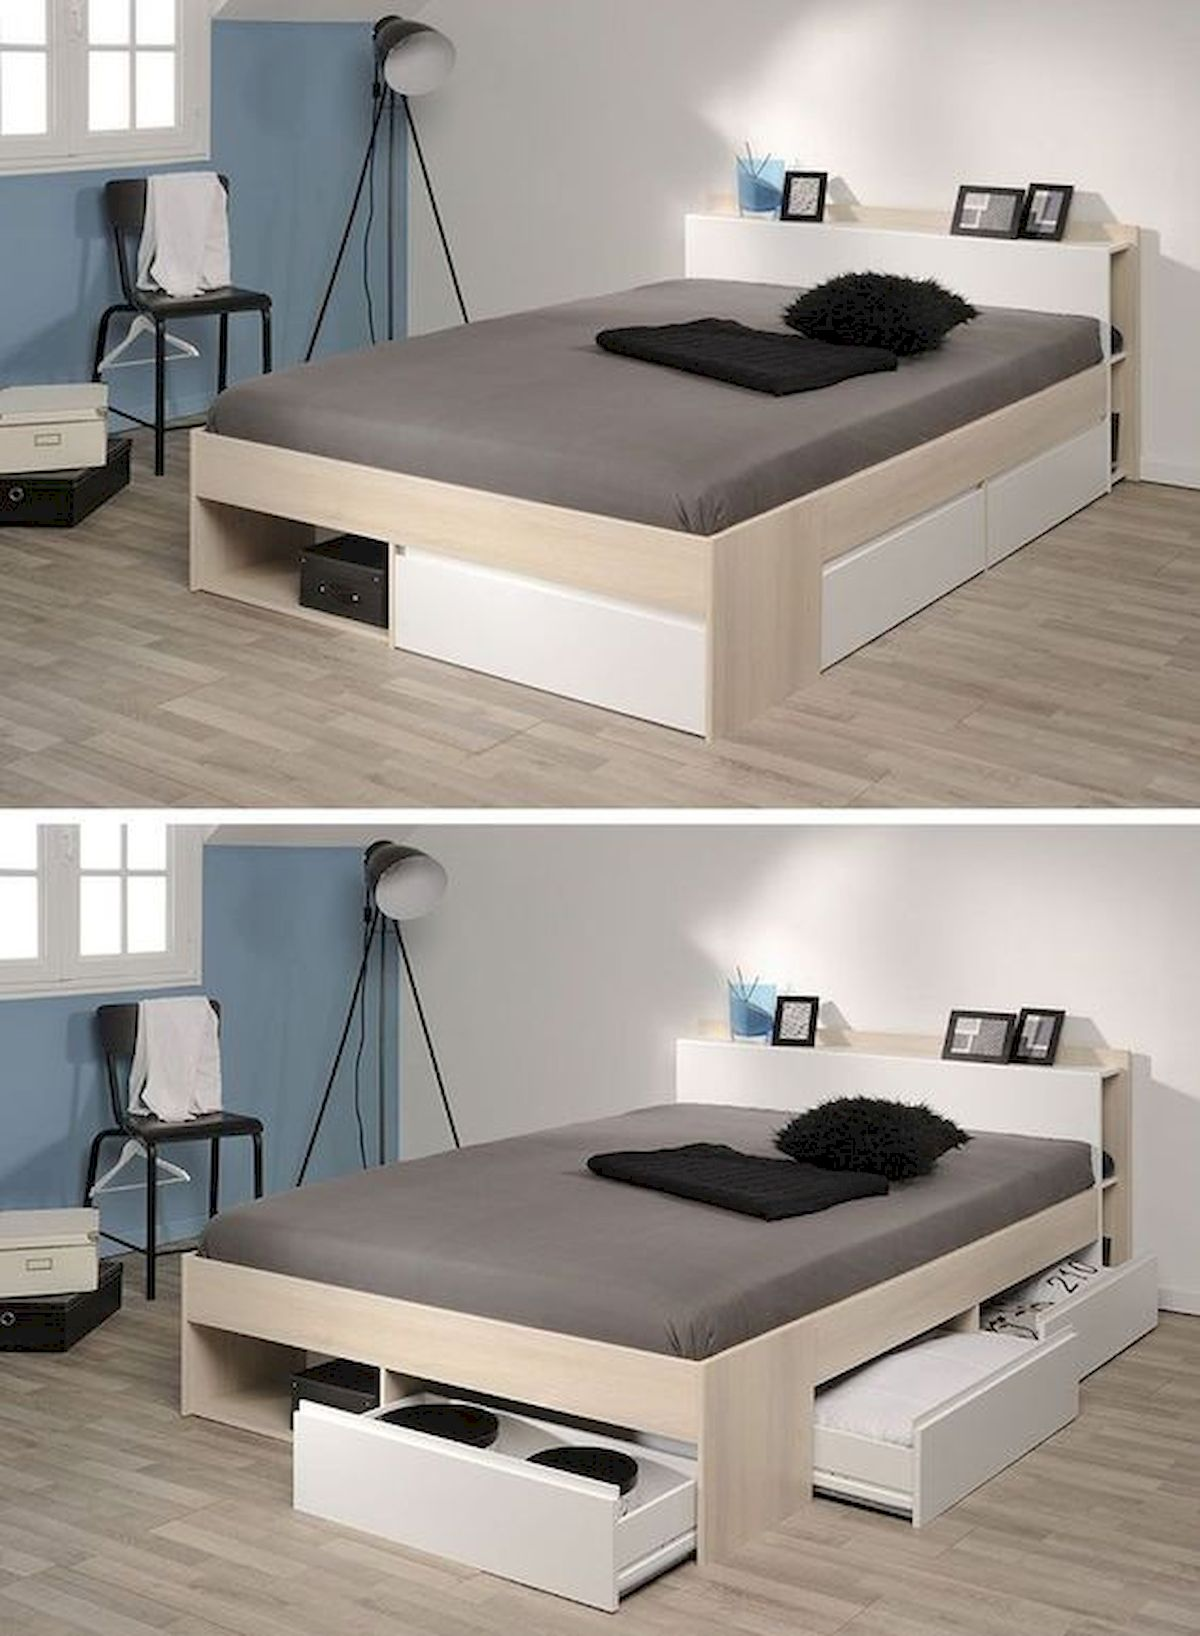 60 Easy And Brilliant DIY Storage Ideas For Small Bedroom (22)